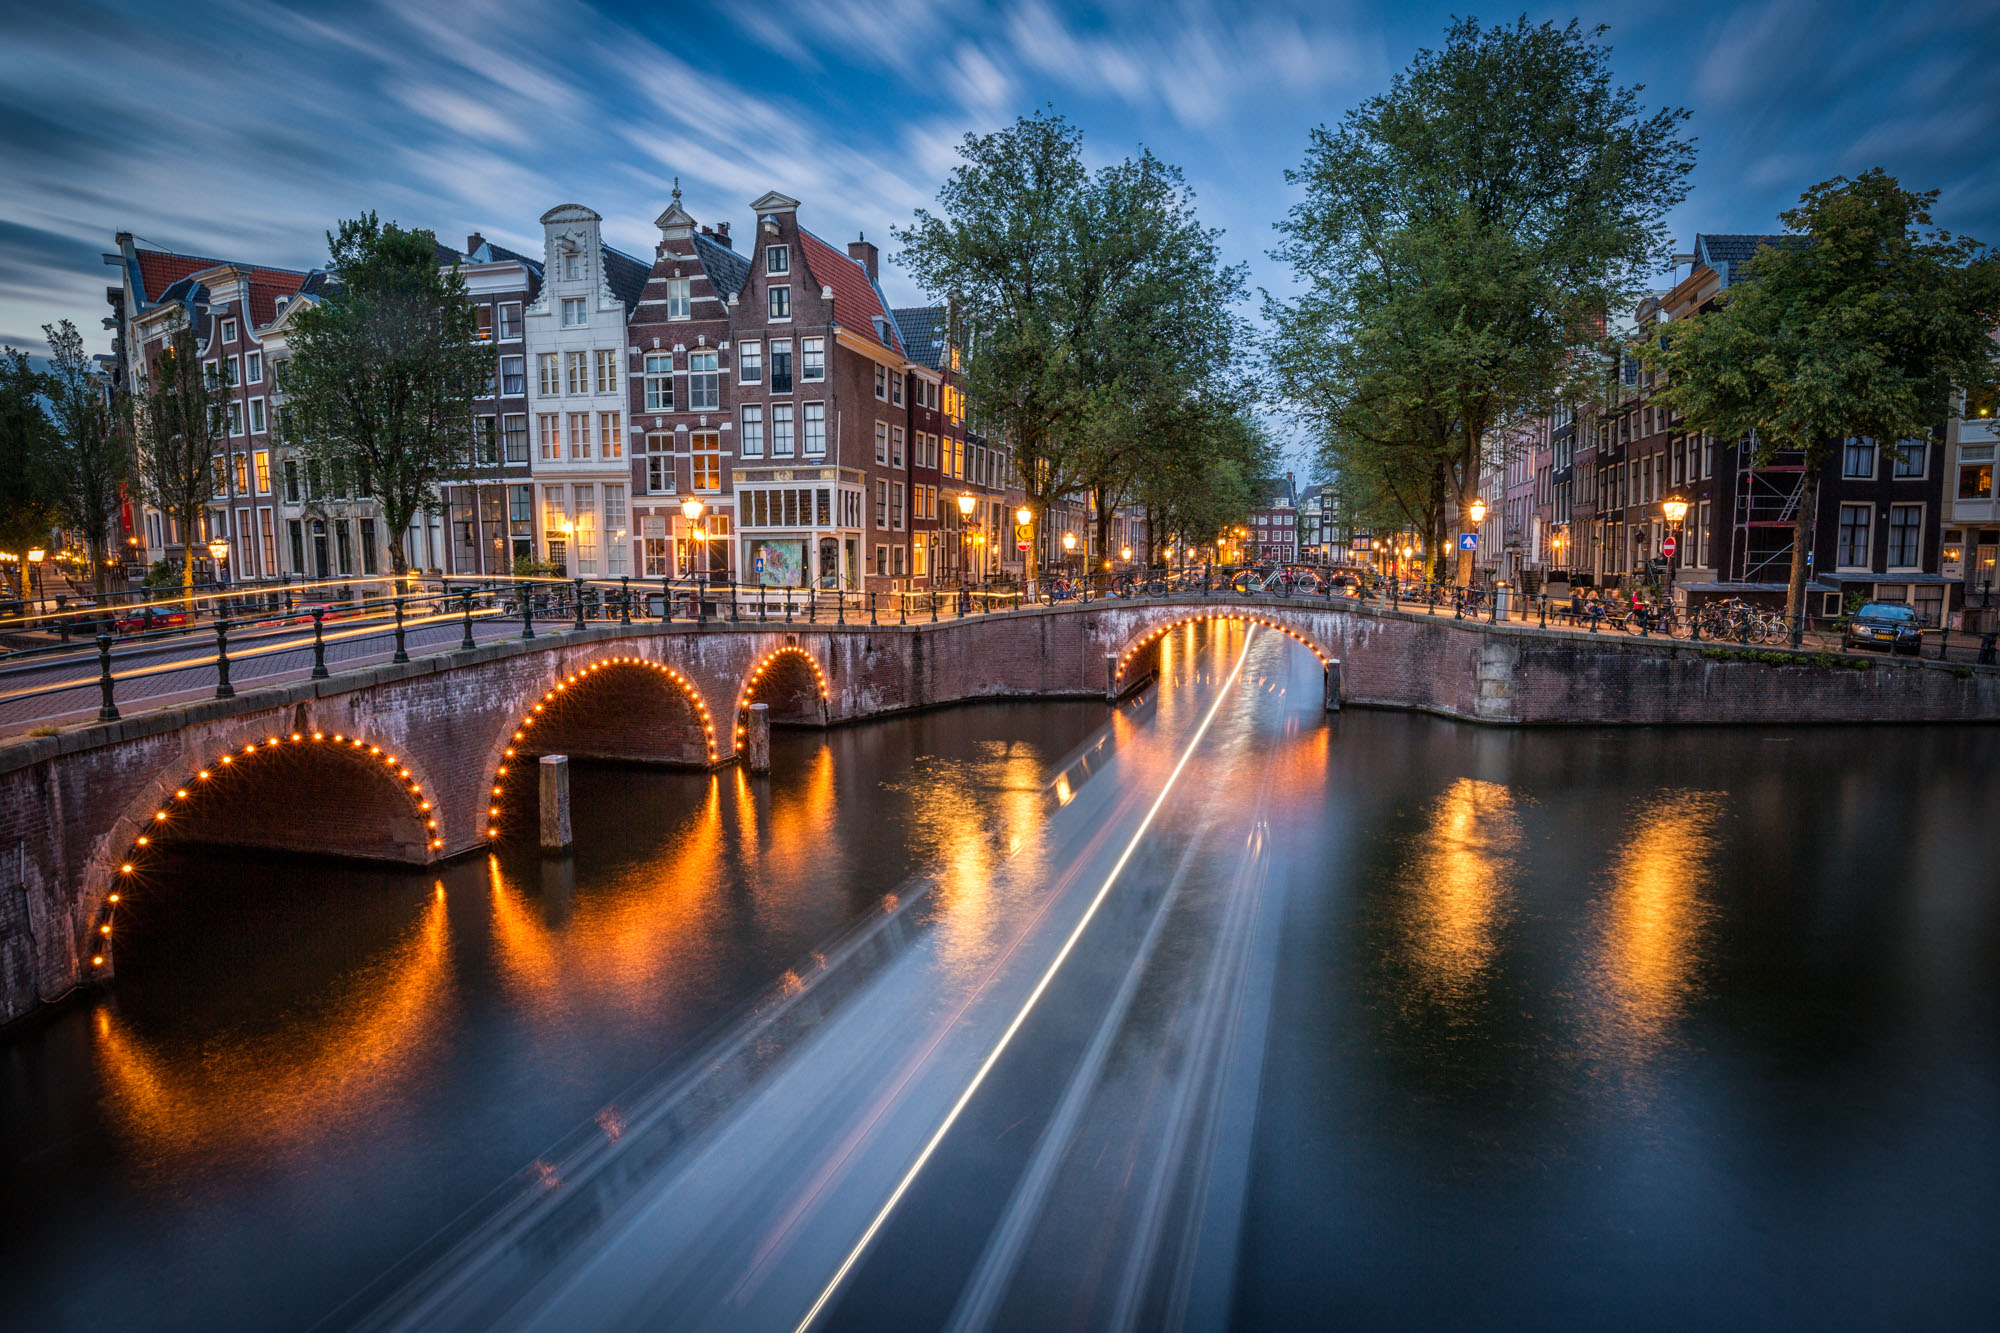 long exposure photography of the light trials of a canal boat beside architecture in Amsterdam at night in The Netherlands